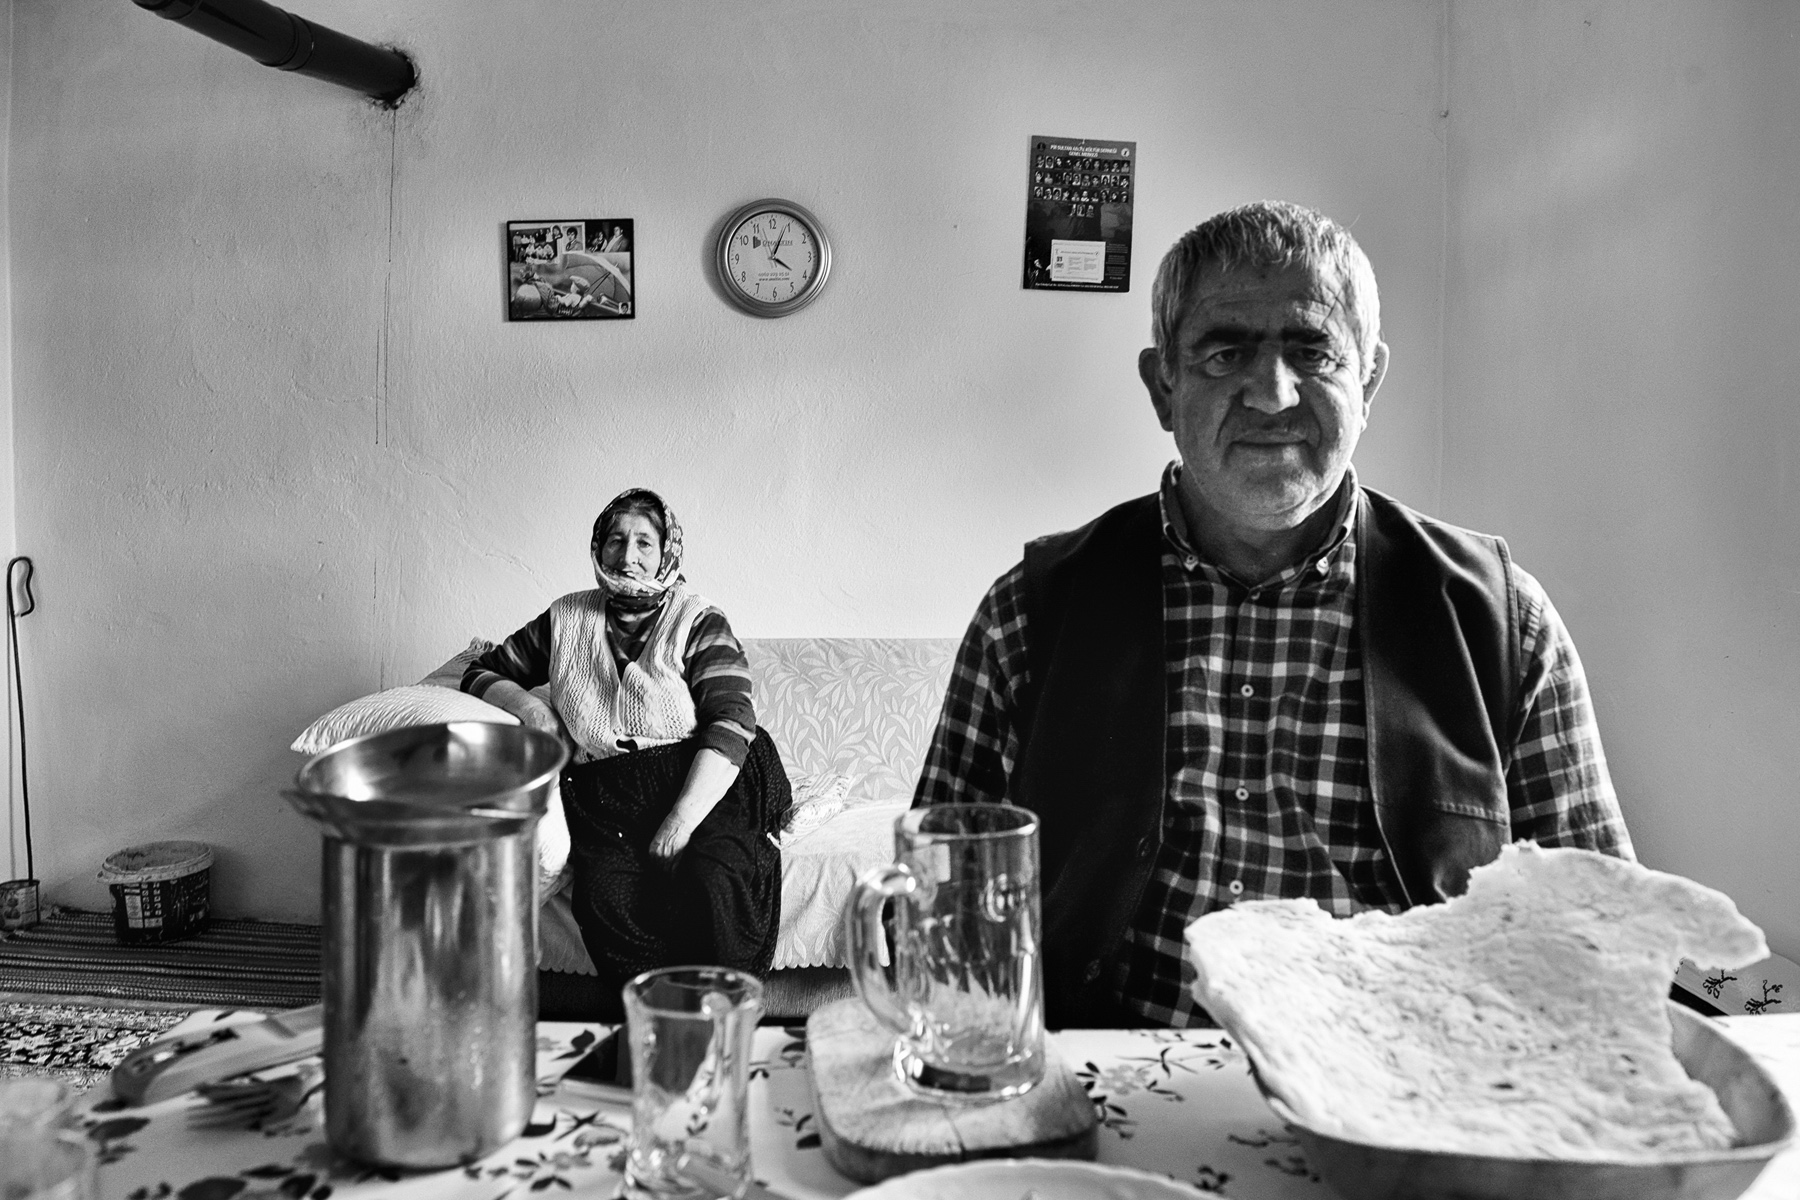 Human Landscapes From East Anatolia